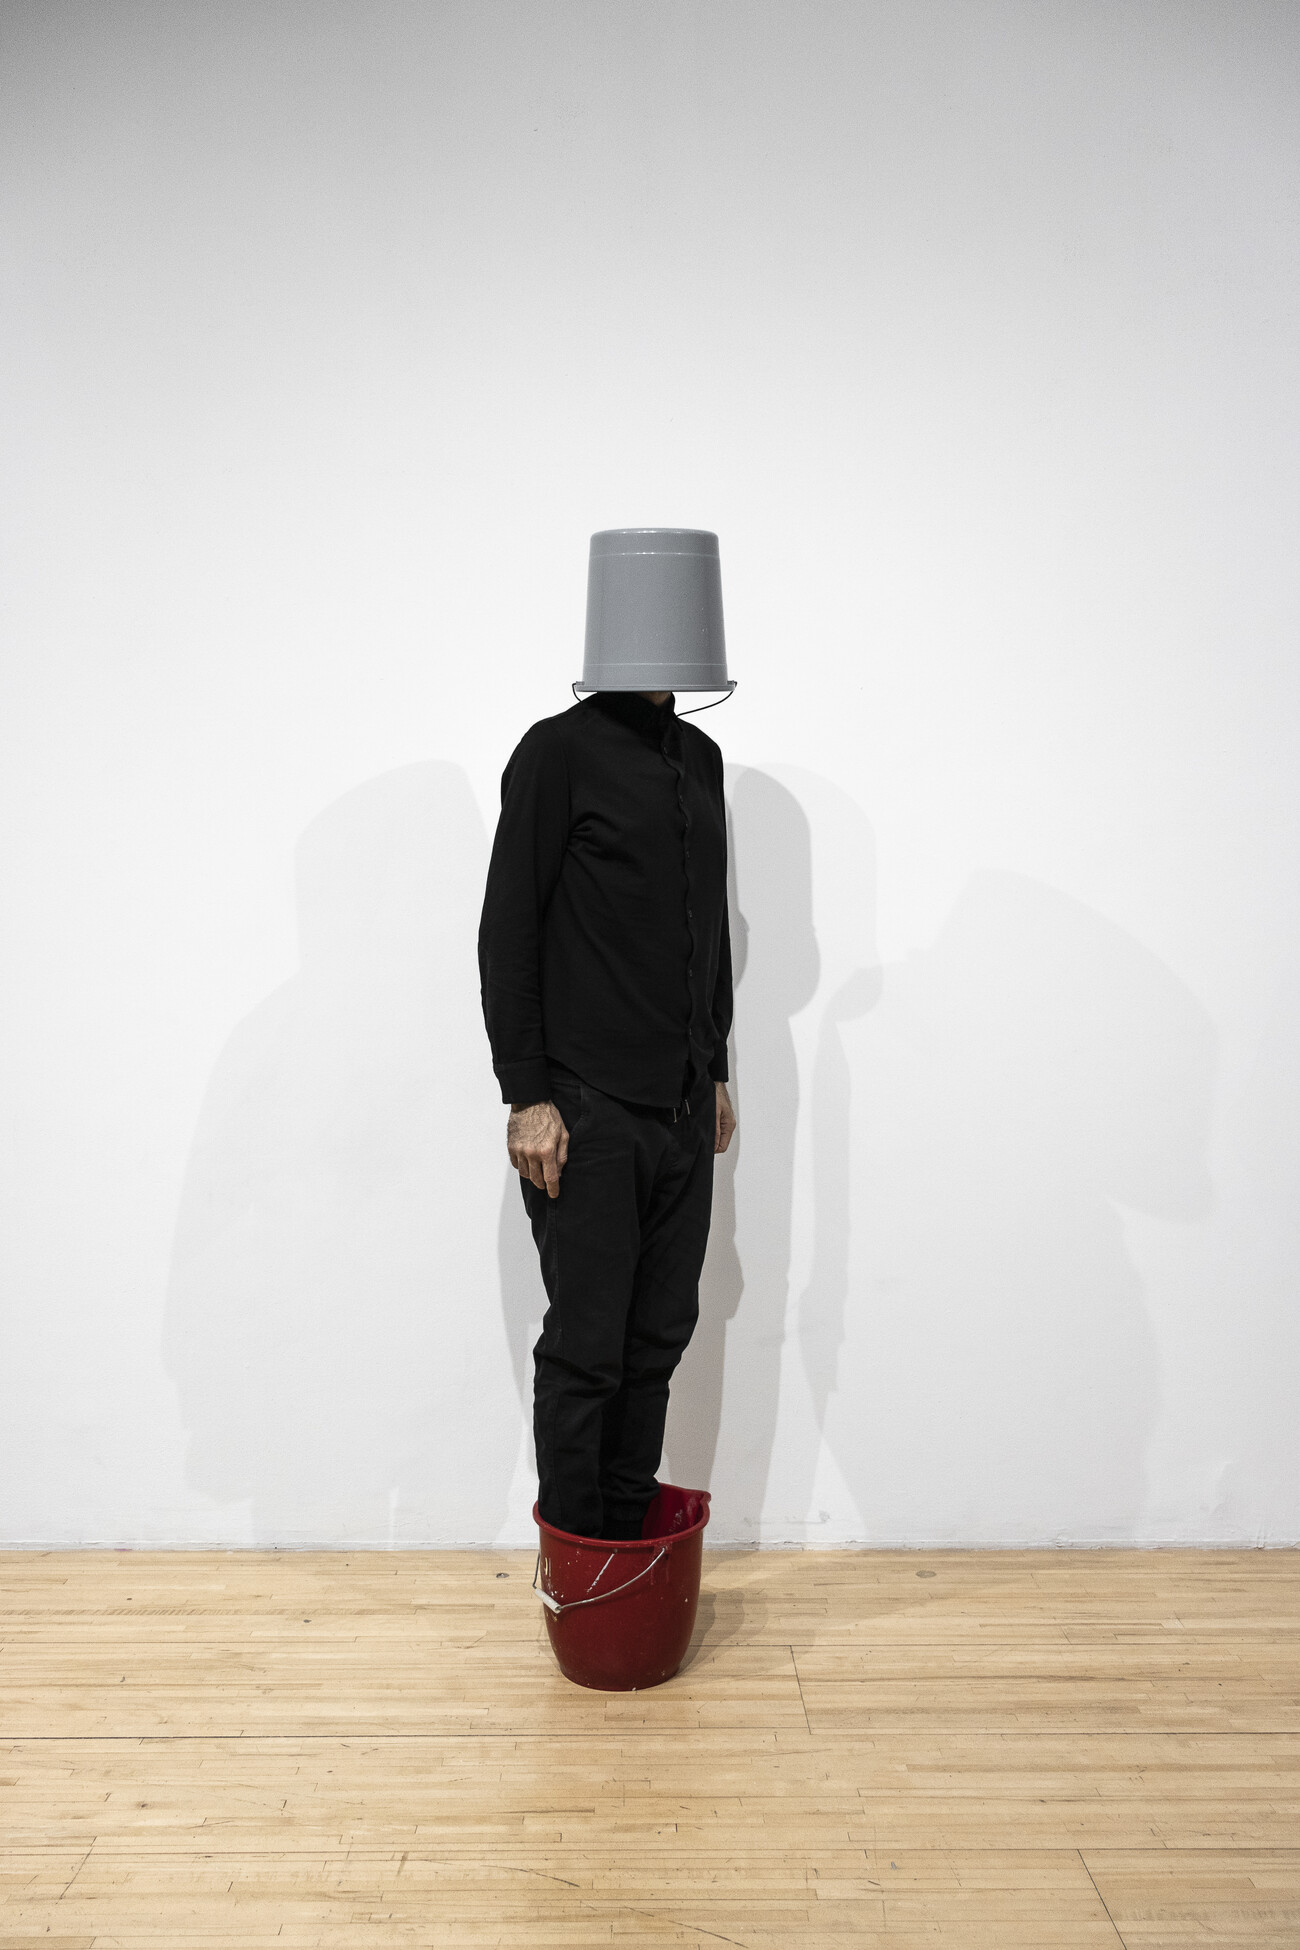 Steve Giasson. Performance invisible n° 172 (S'habituer à disparaître). Reenactment de Erwin Wurm. Untitled (Double Bucket). 1999. Performeur : Steve Giasson. Crédit photographique : Martin Vinette. AXENÉO7, Gatineau. 5 novembre 2019.